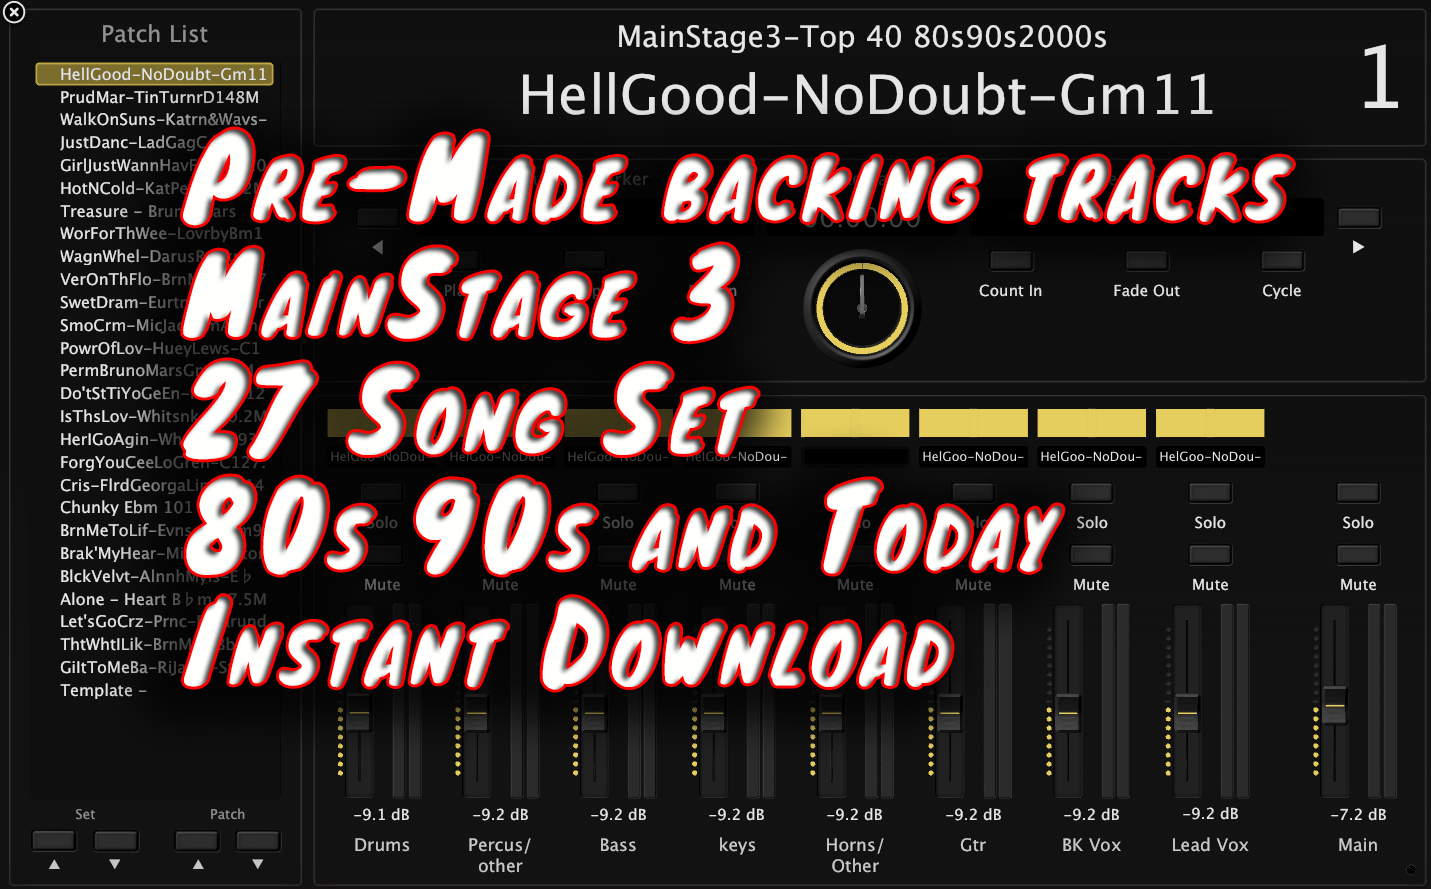 MainStage 3 Pre-Made backing tracks 27 Song Set 80s 90s and Today - Instant  Download